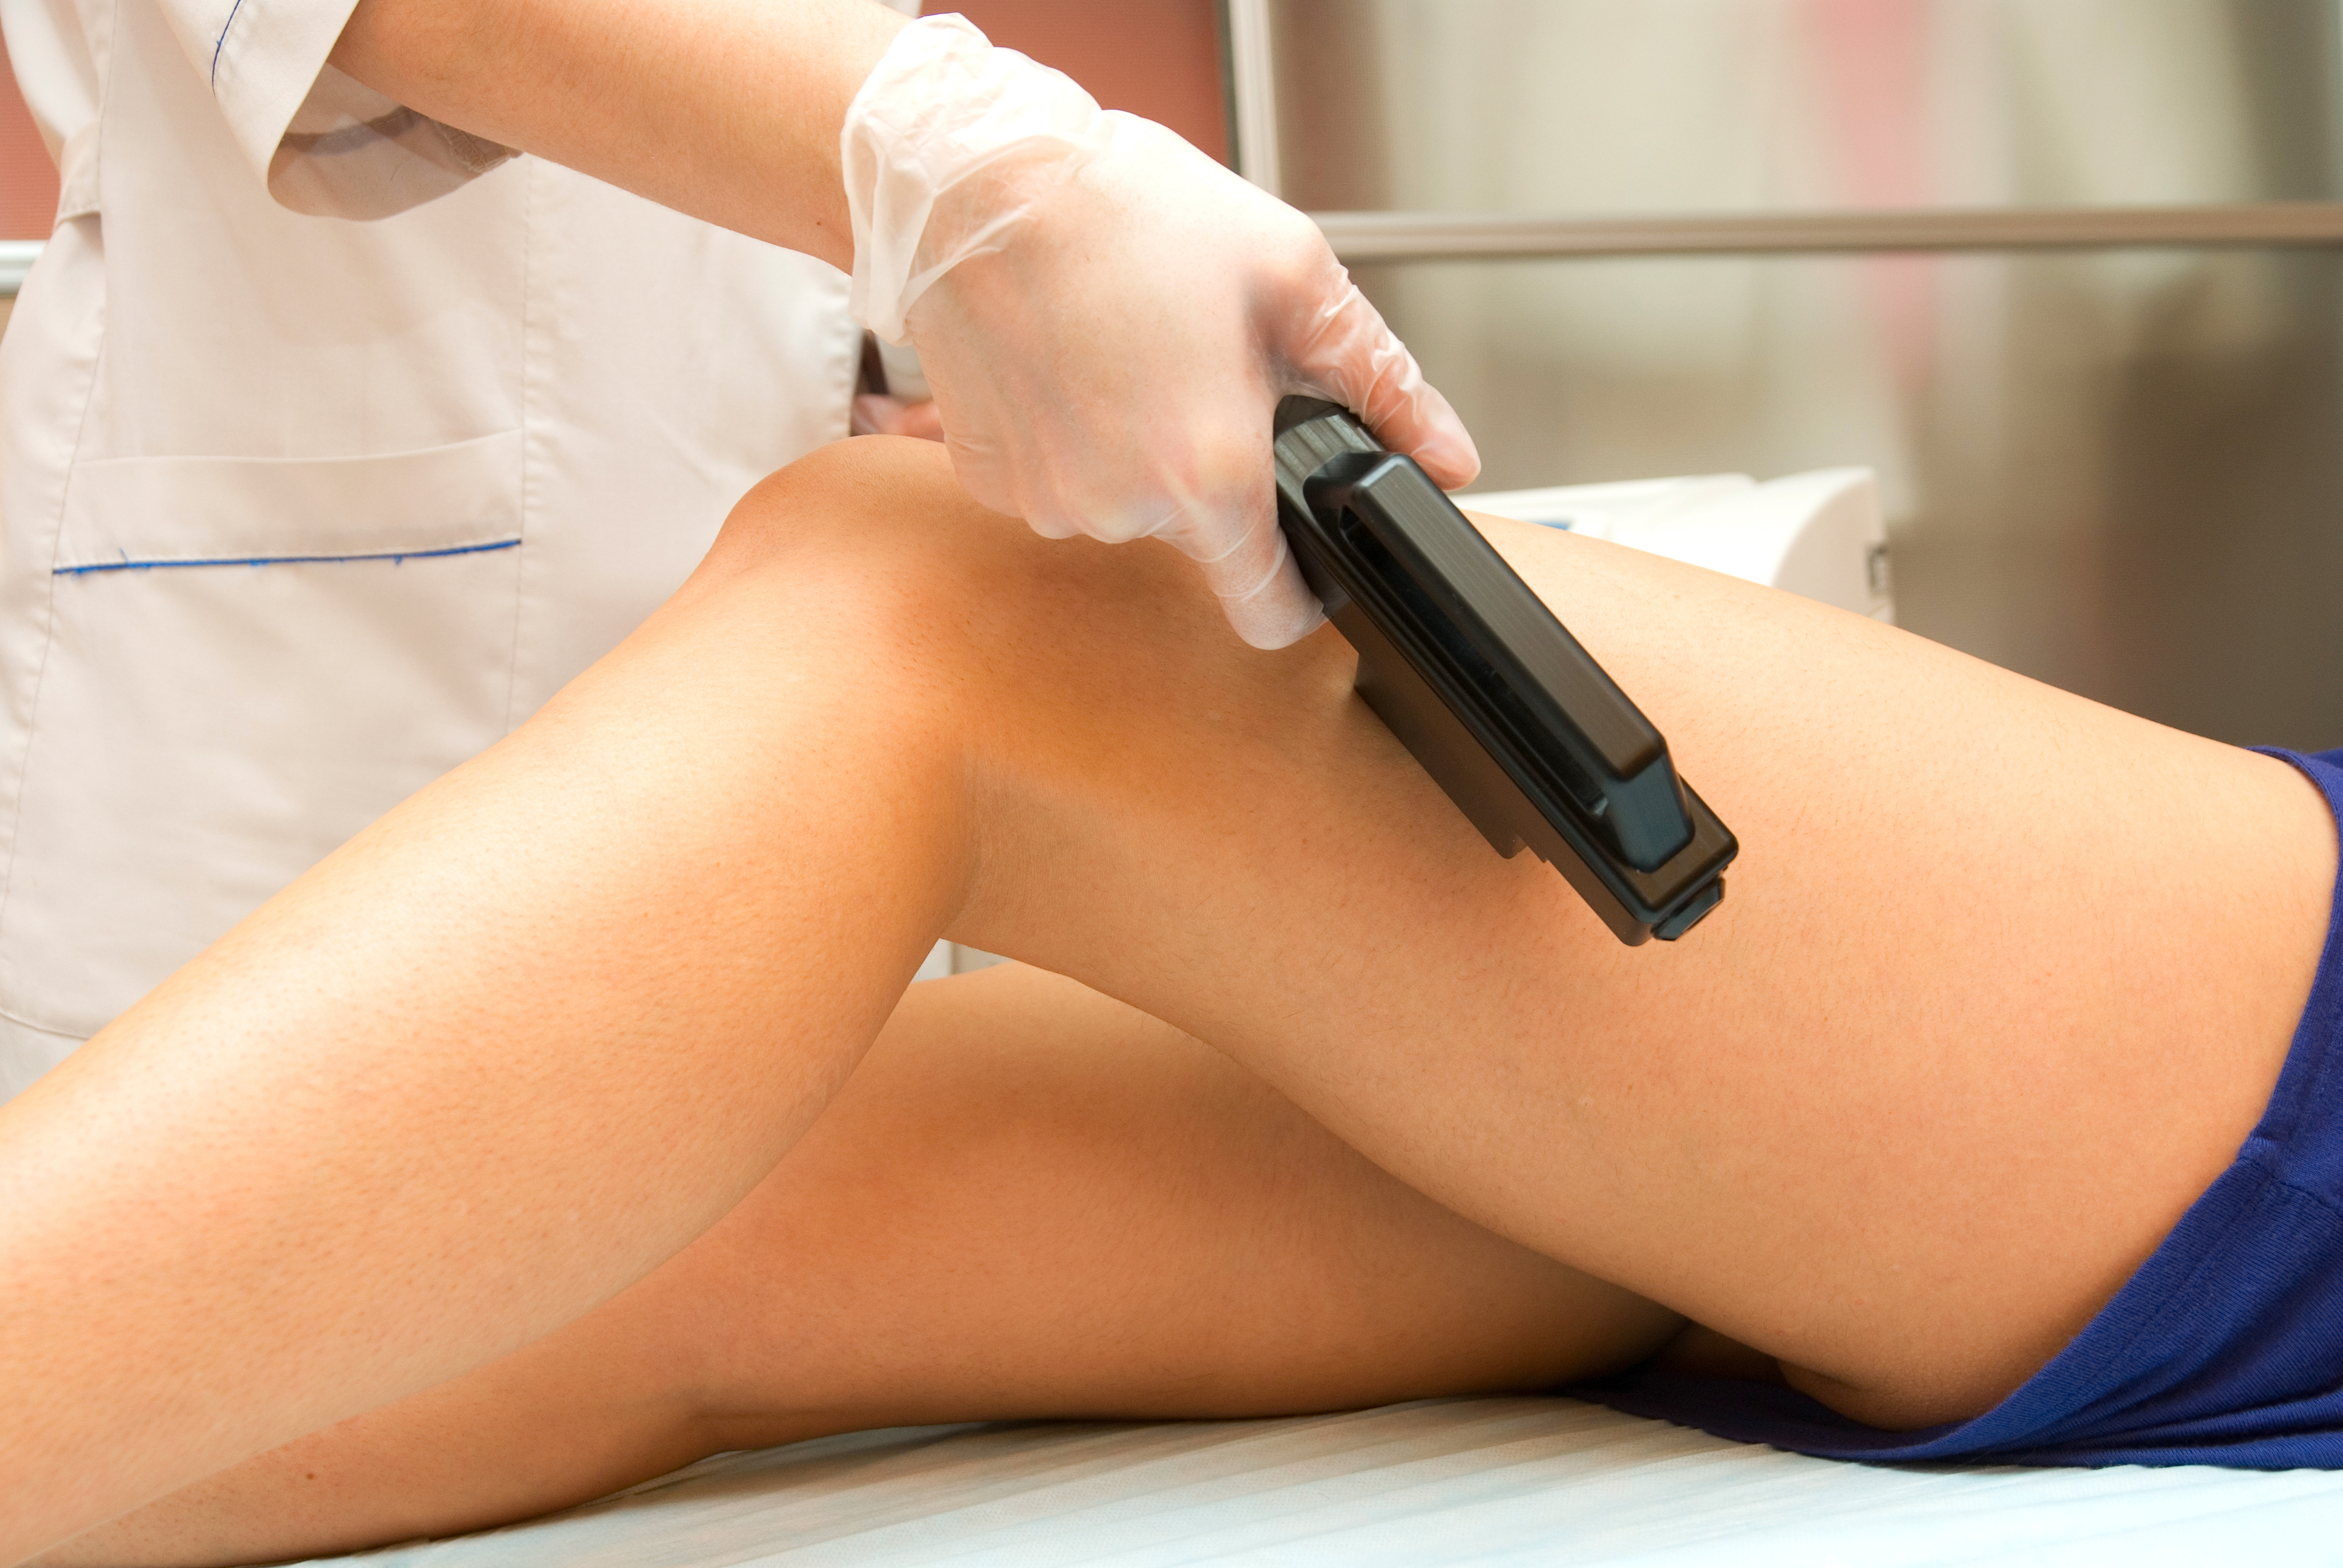 Get The Facts: What Is Laser Hair Removal?